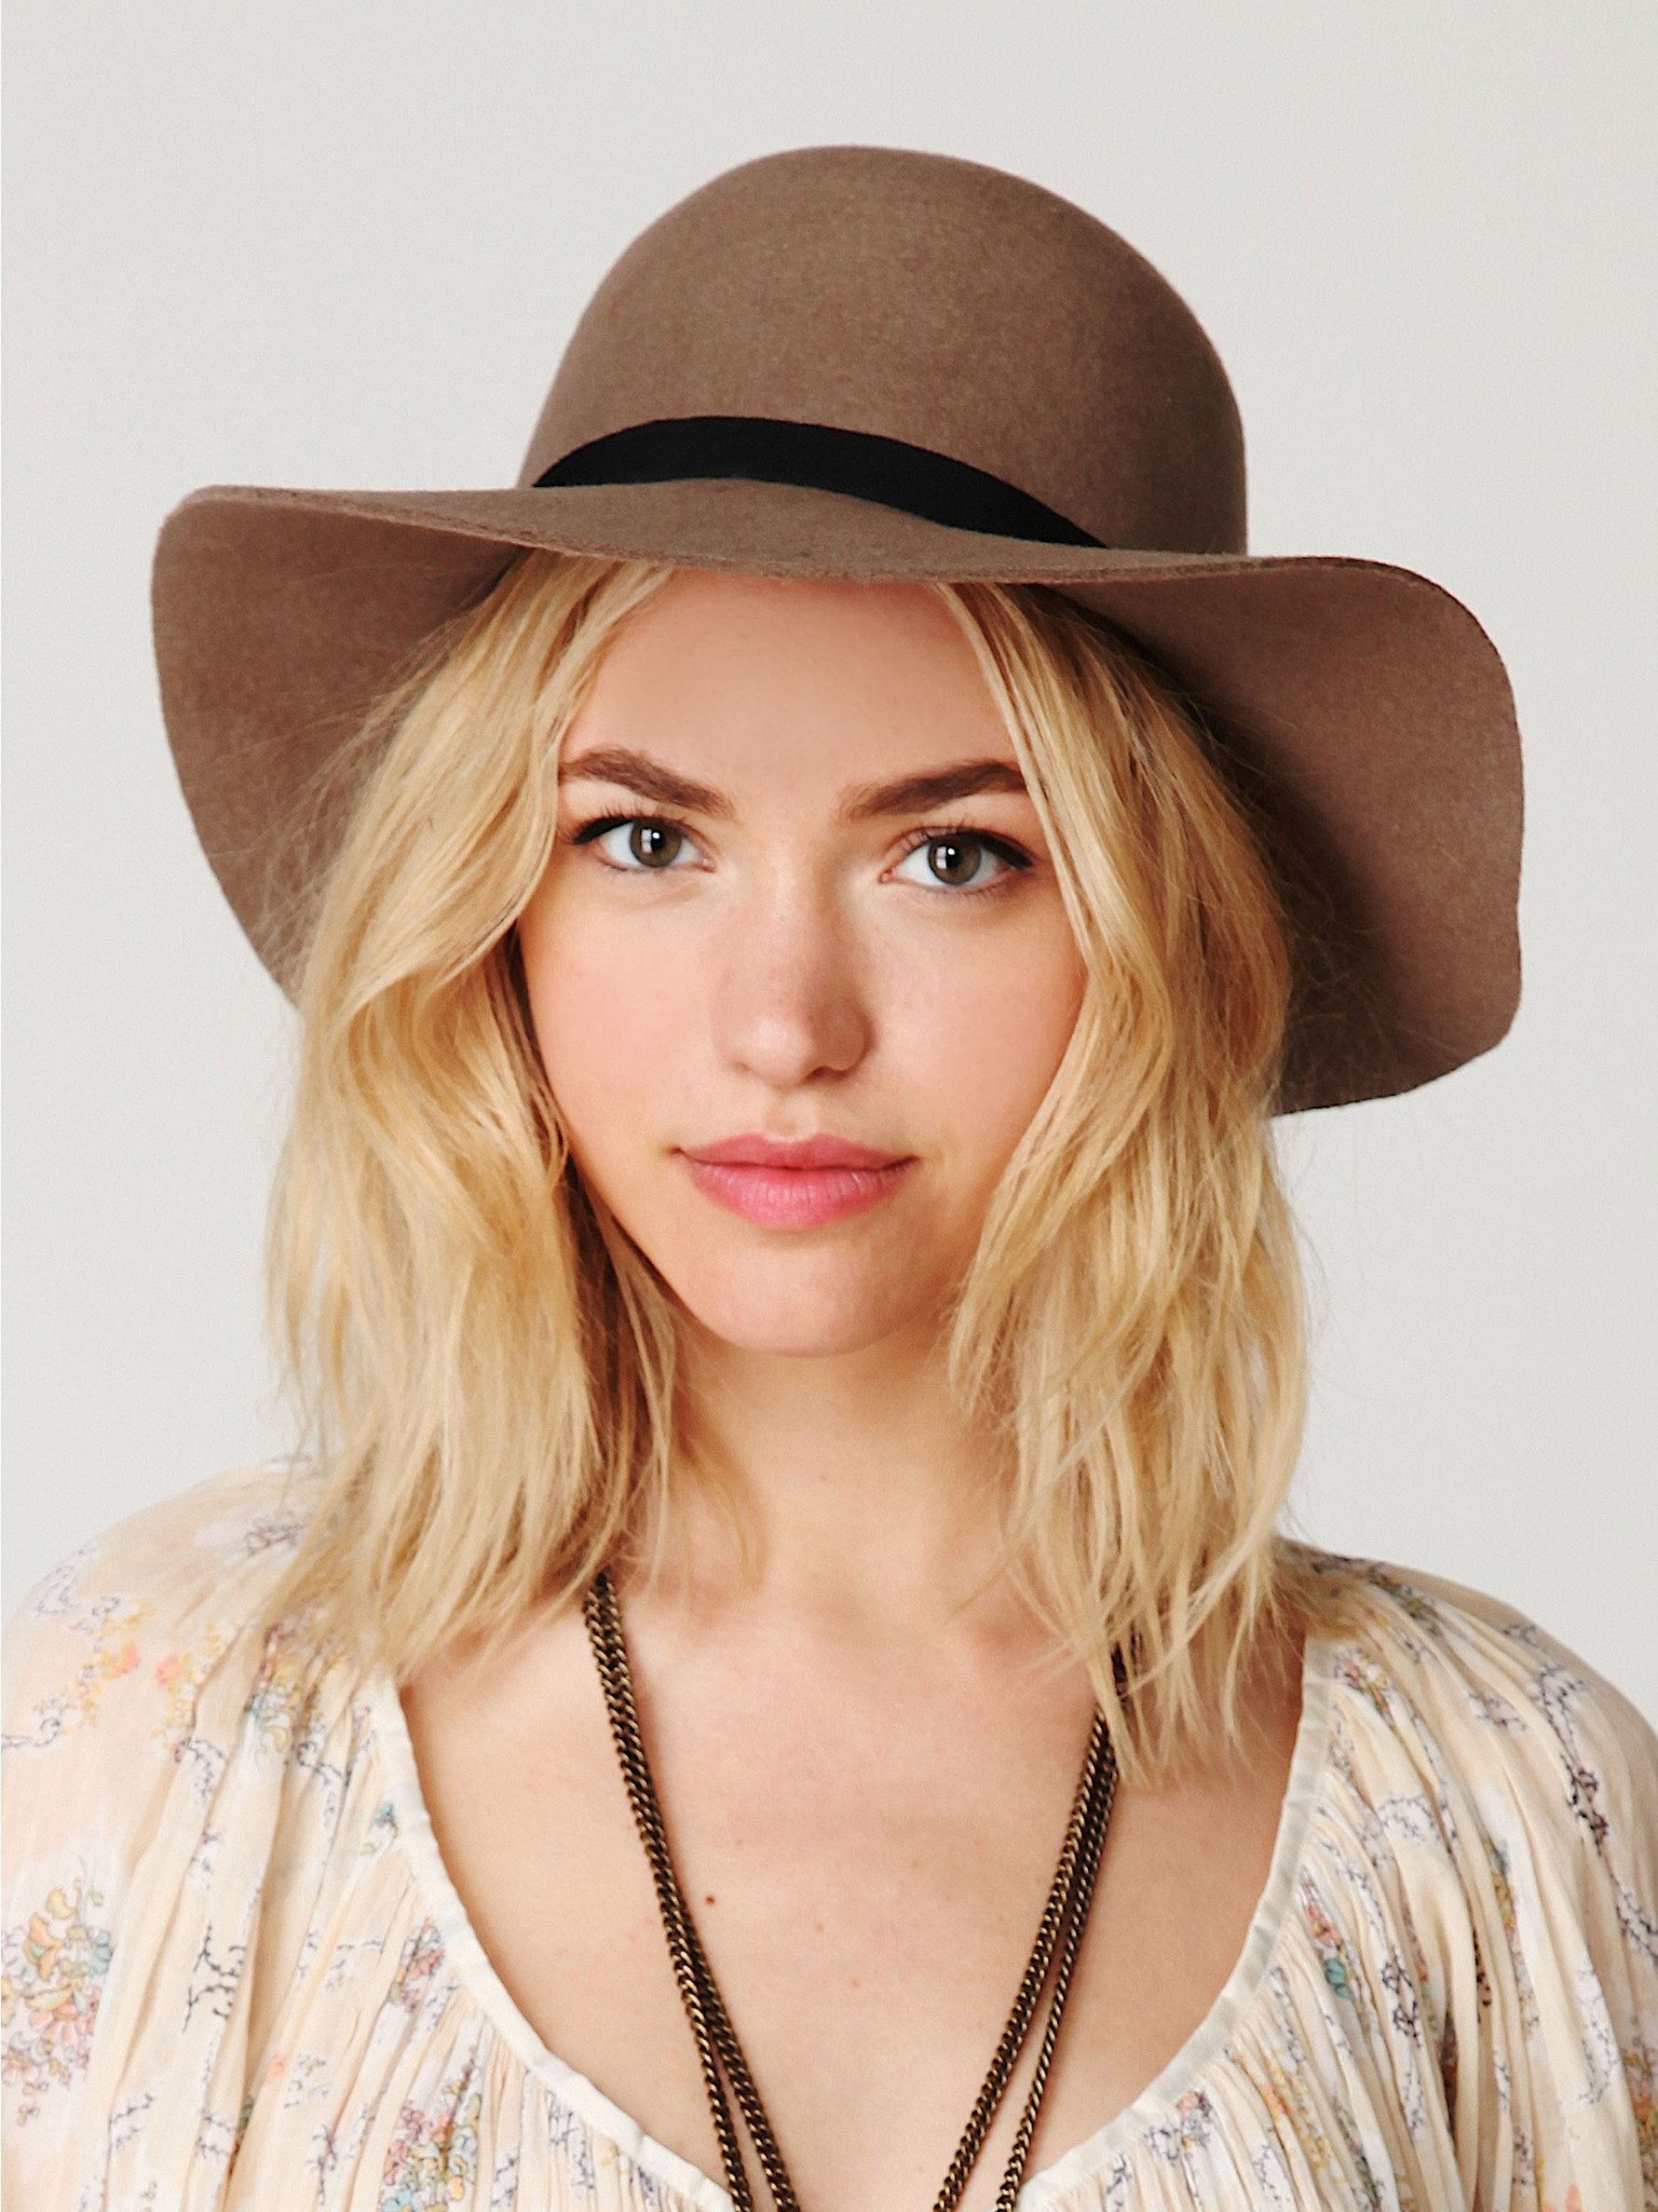 I super want a floppy felt hat for Europe!  982f9a00be9